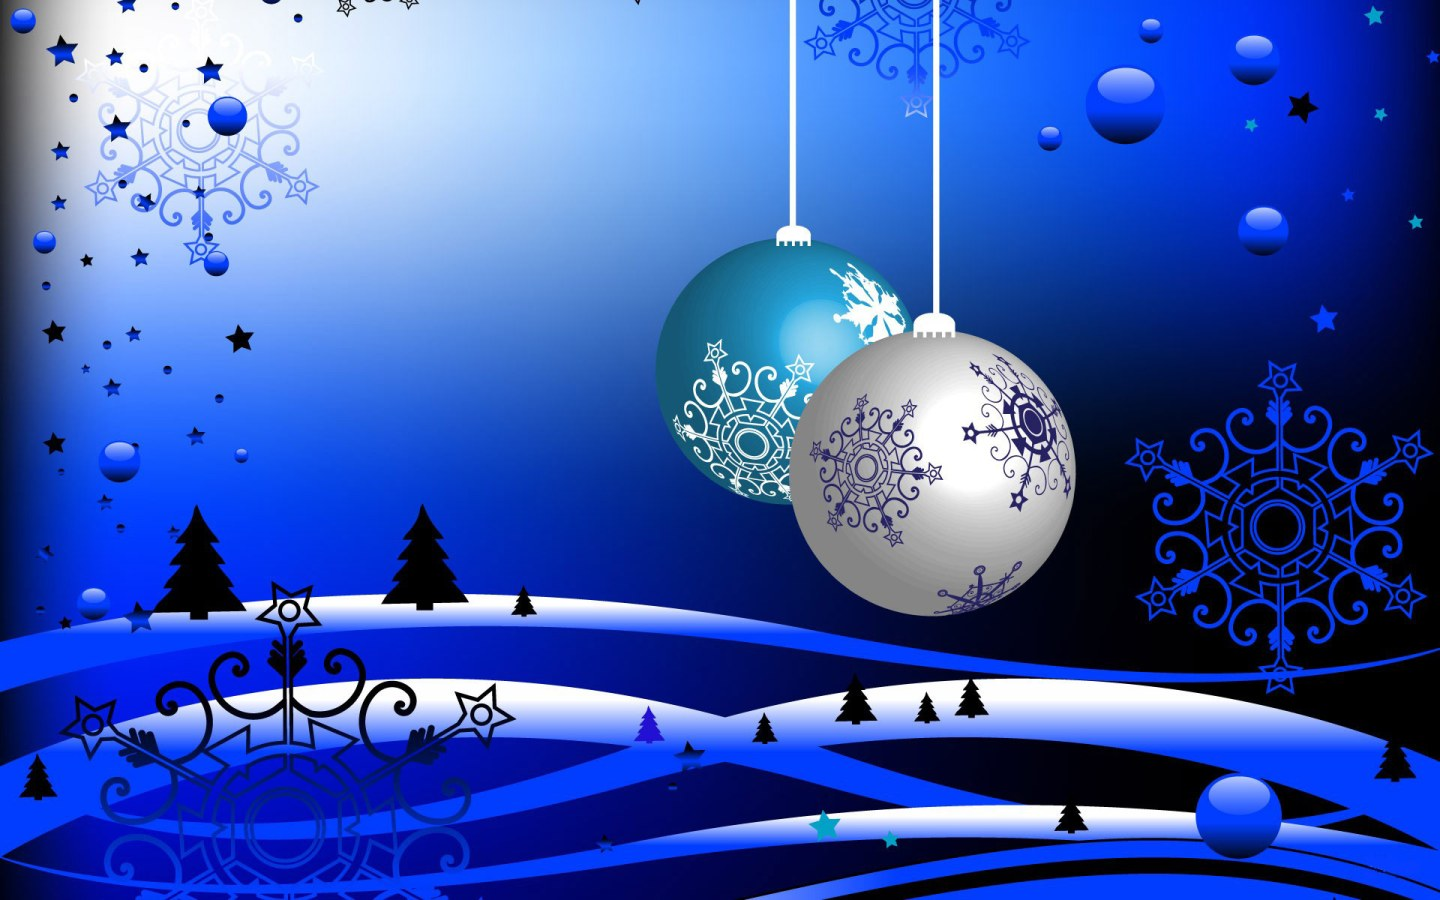 Blue Christmas Wallpapers and Screensavers For Windows 7 1440x900